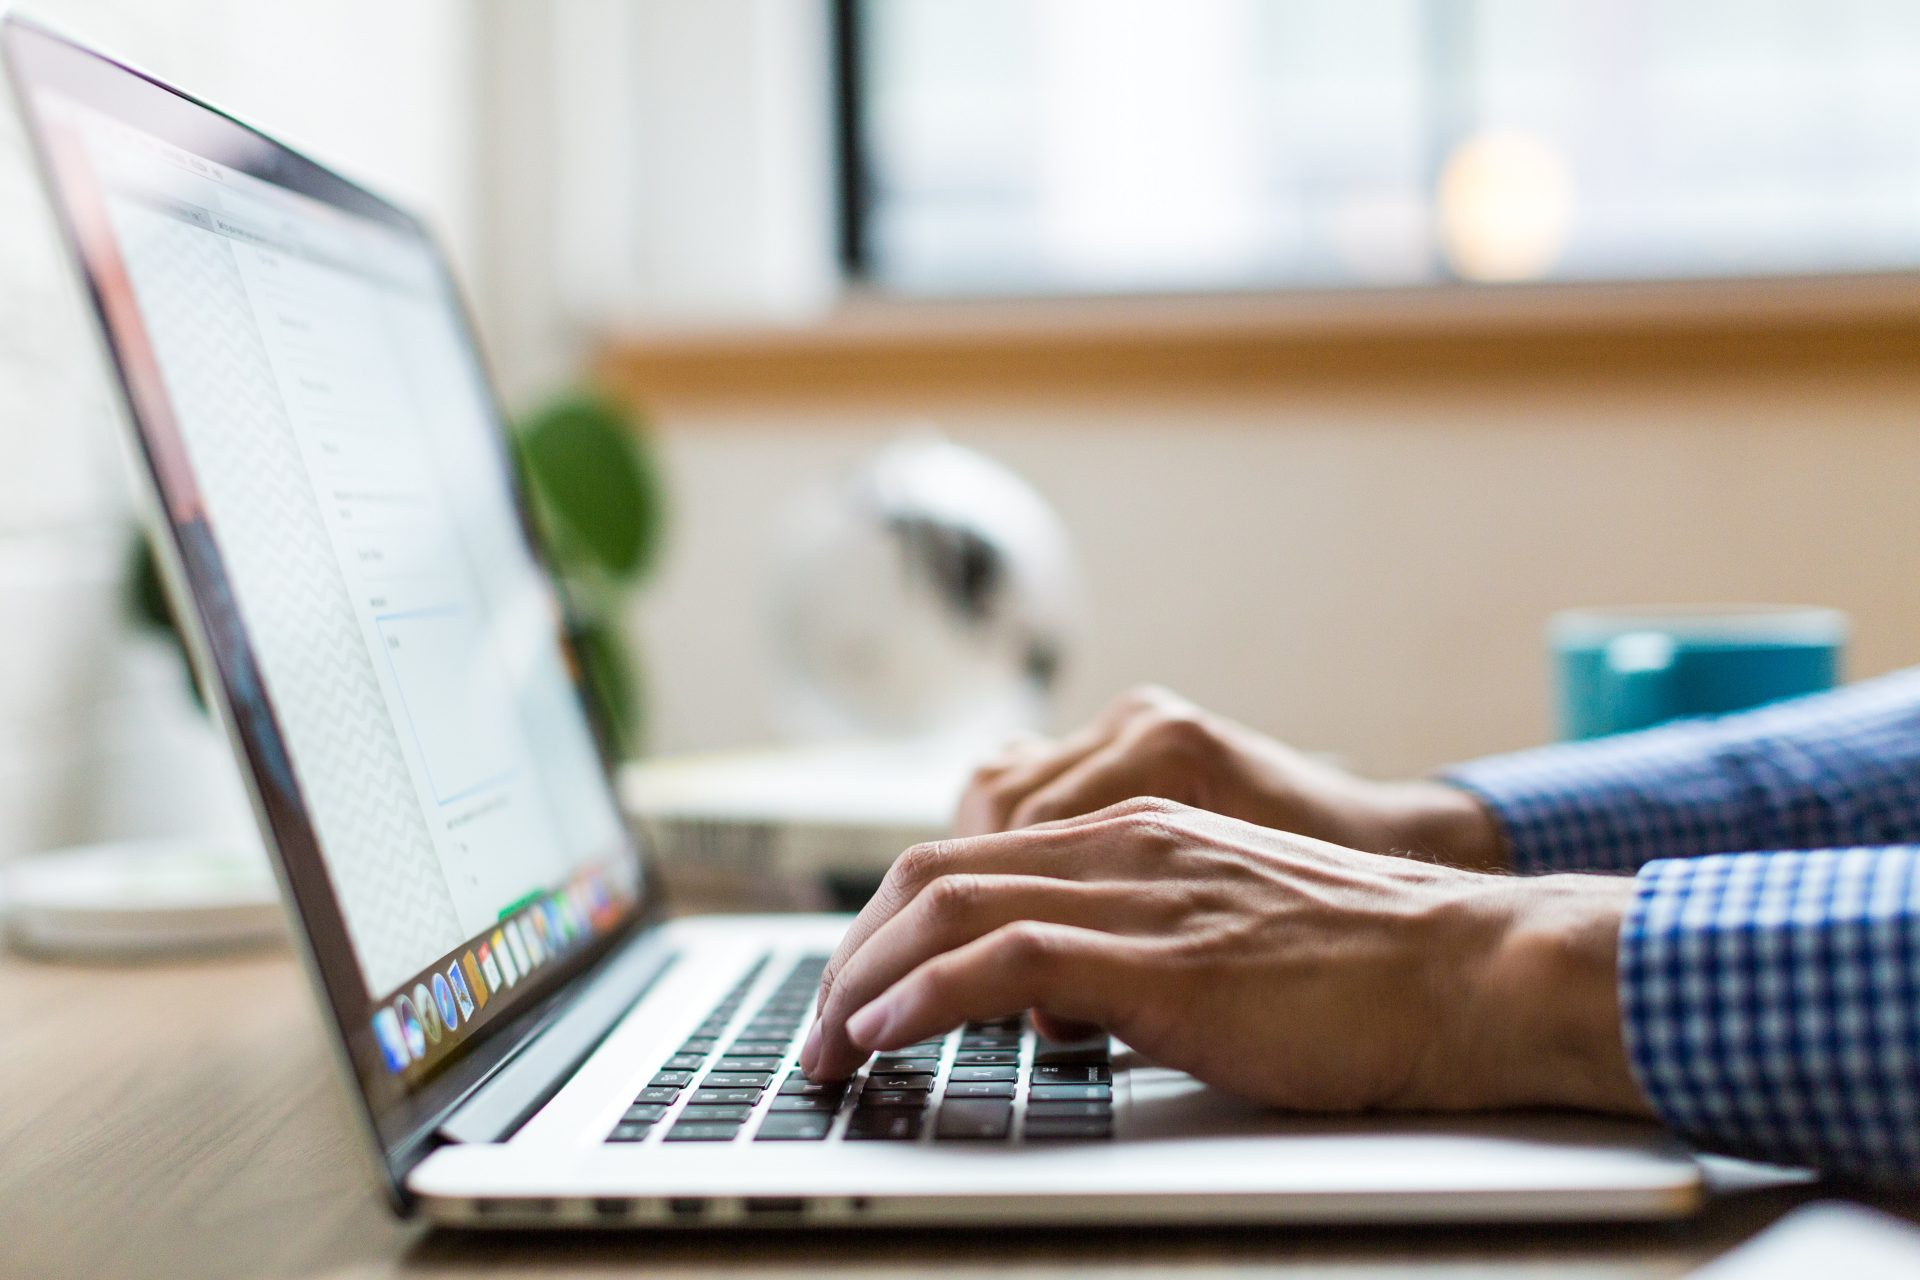 Should I Transcribe My Own Sermons or Outsource to a Transcription Service?